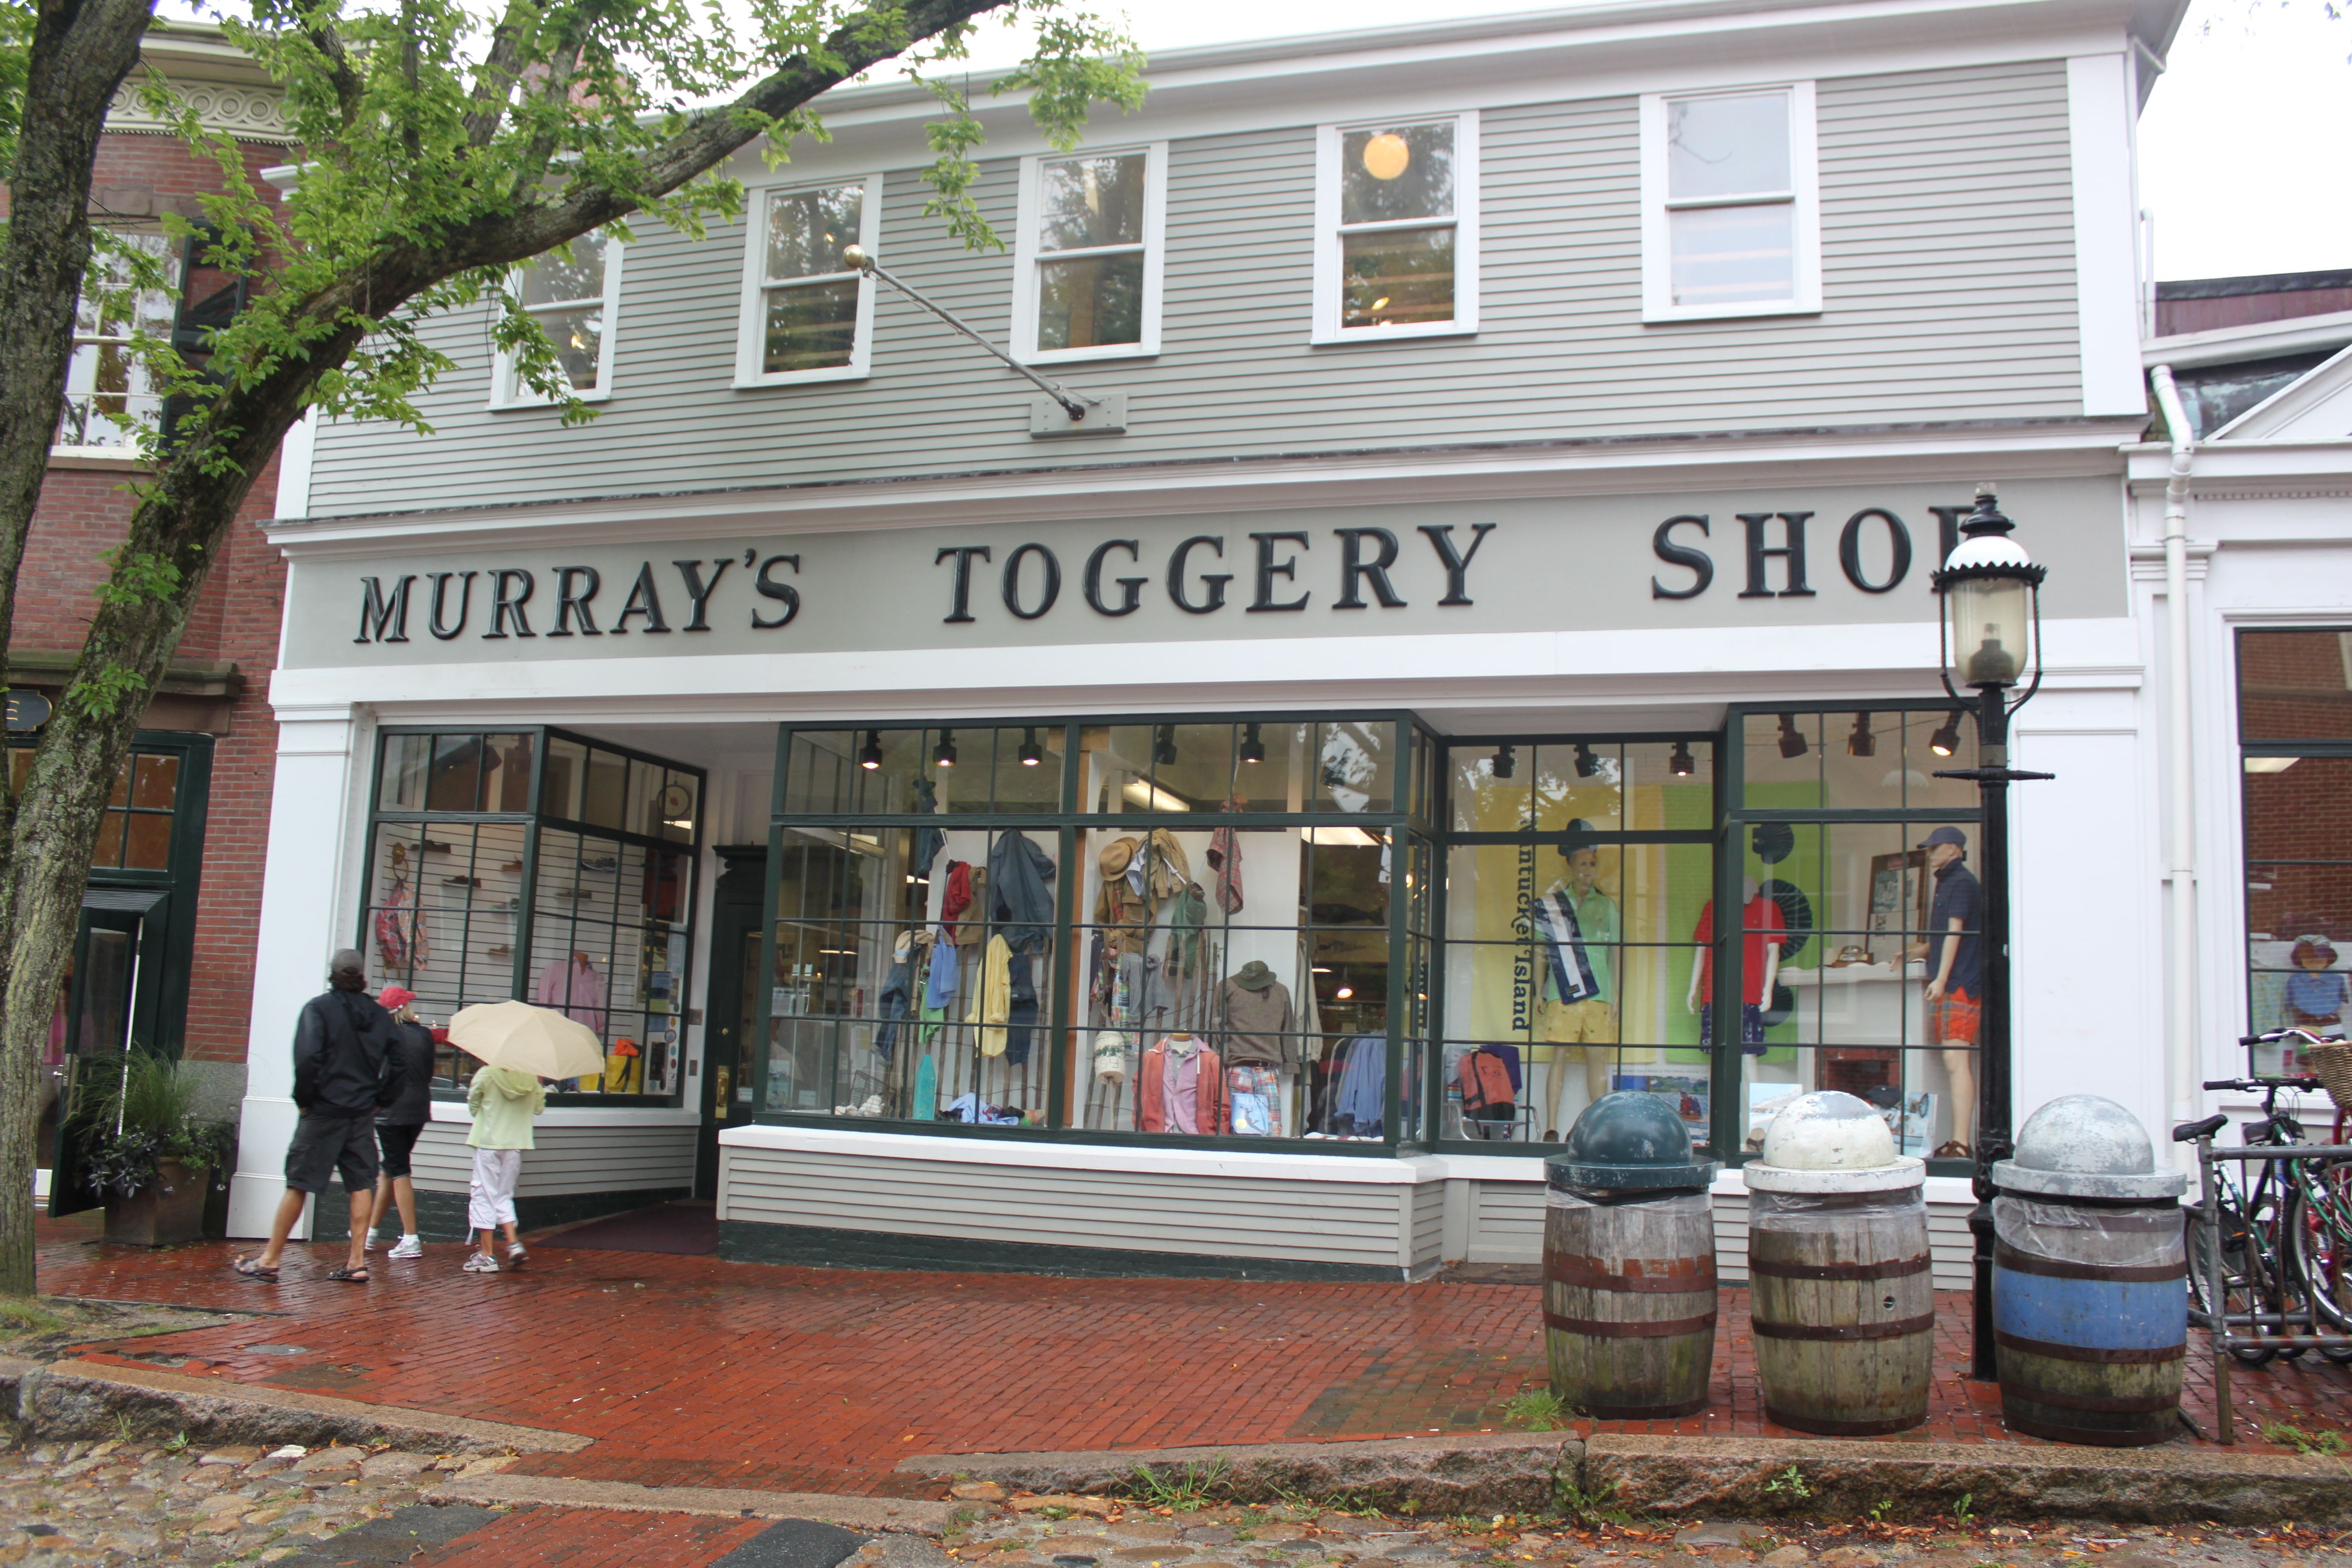 Murray's Toggery Shop Store Visit - The Fine Young Gentleman